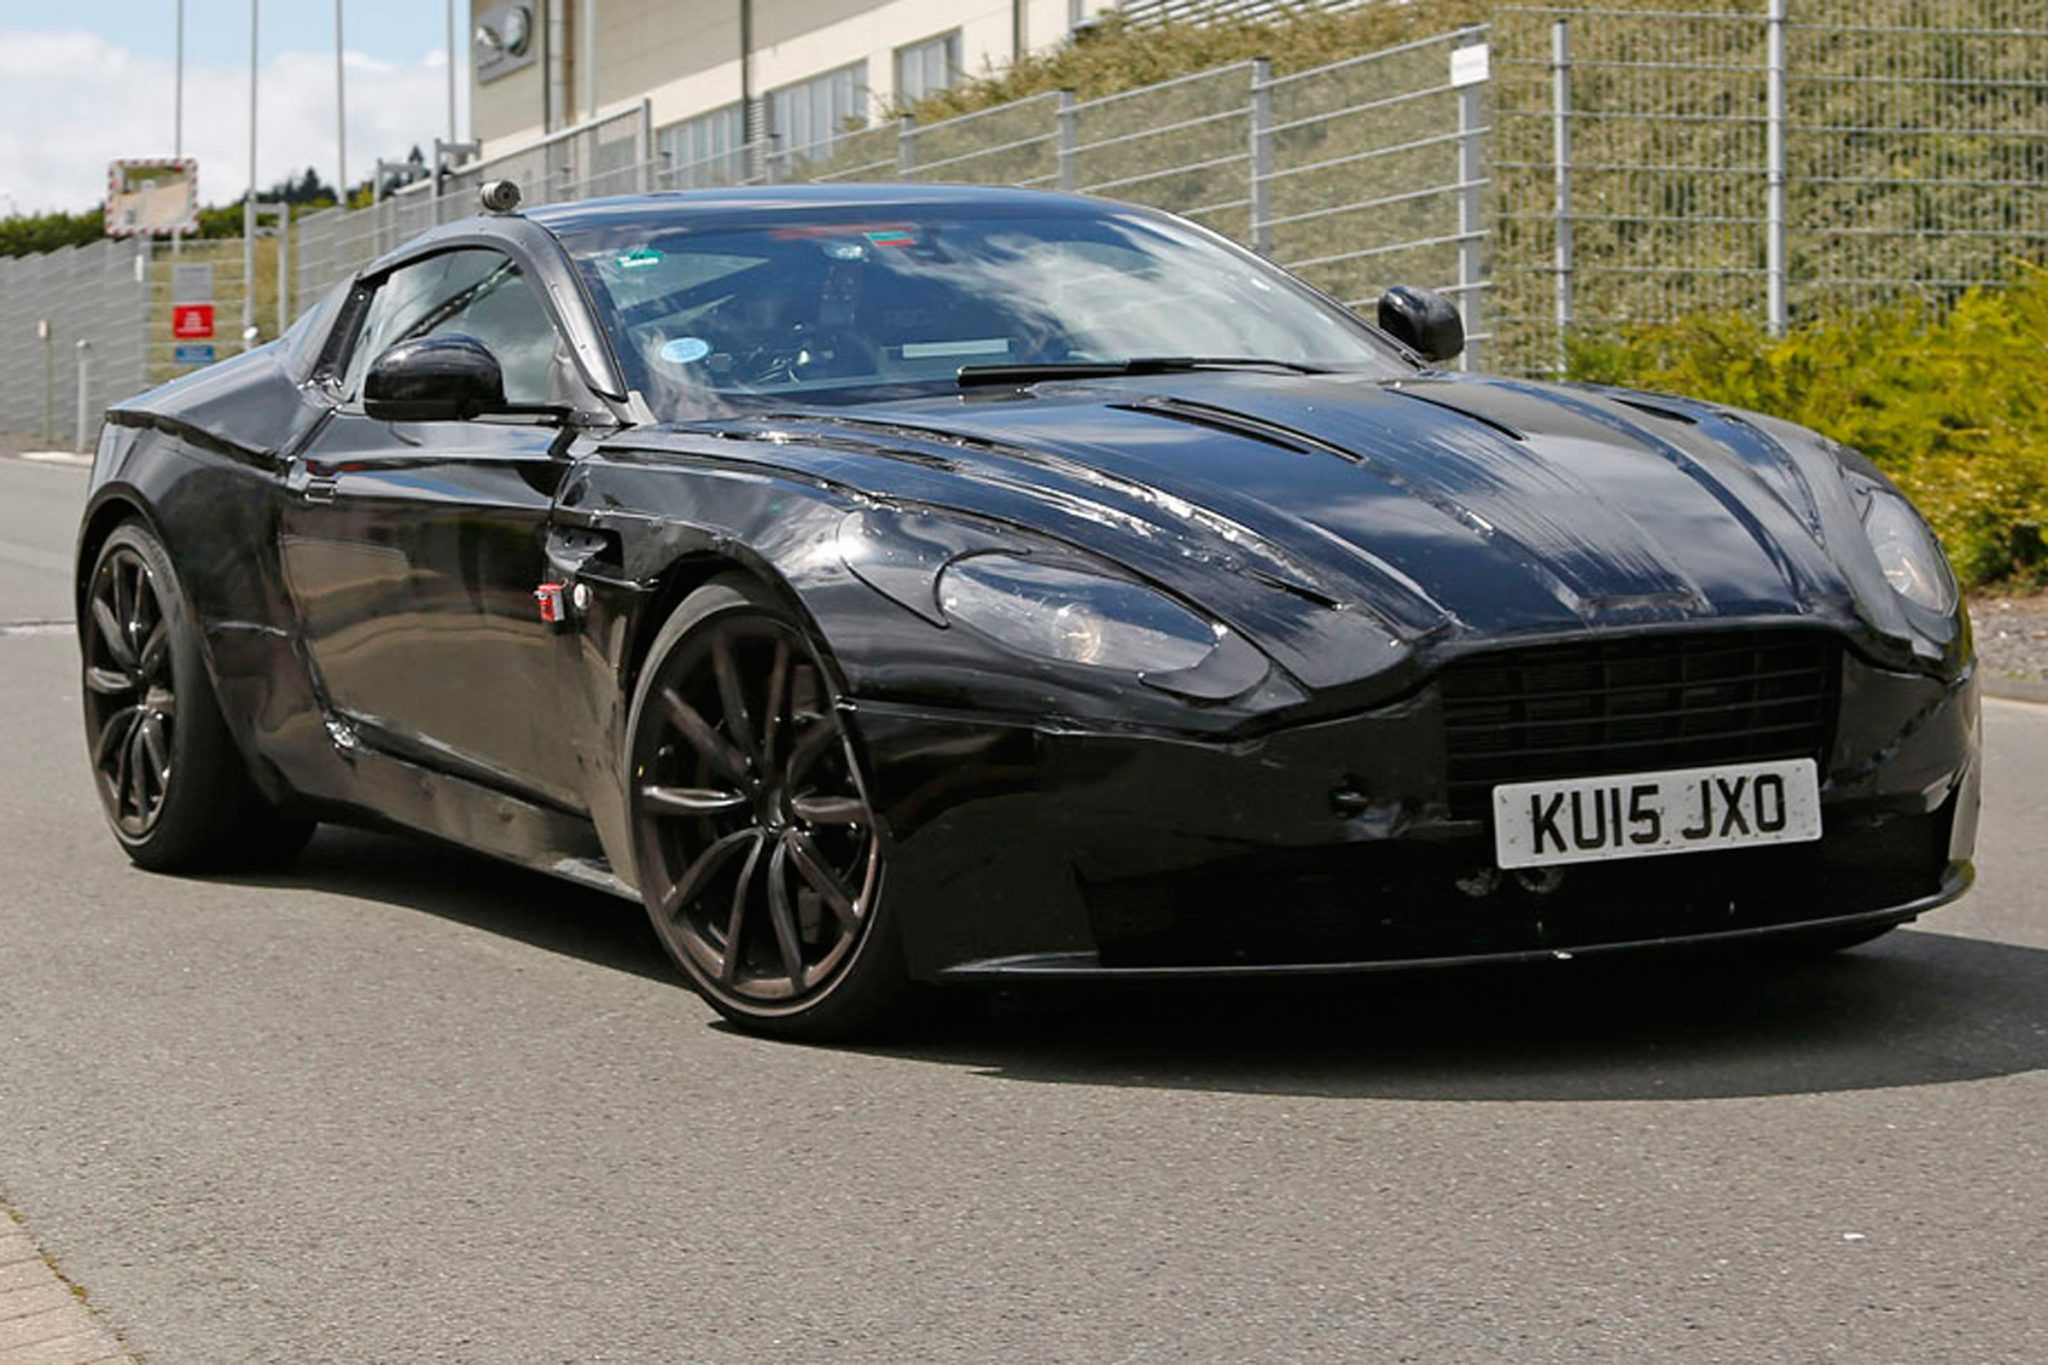 Aston Martin DB11 Set to Succeed DB9: The First in an Entire New Range of Upcoming Astons